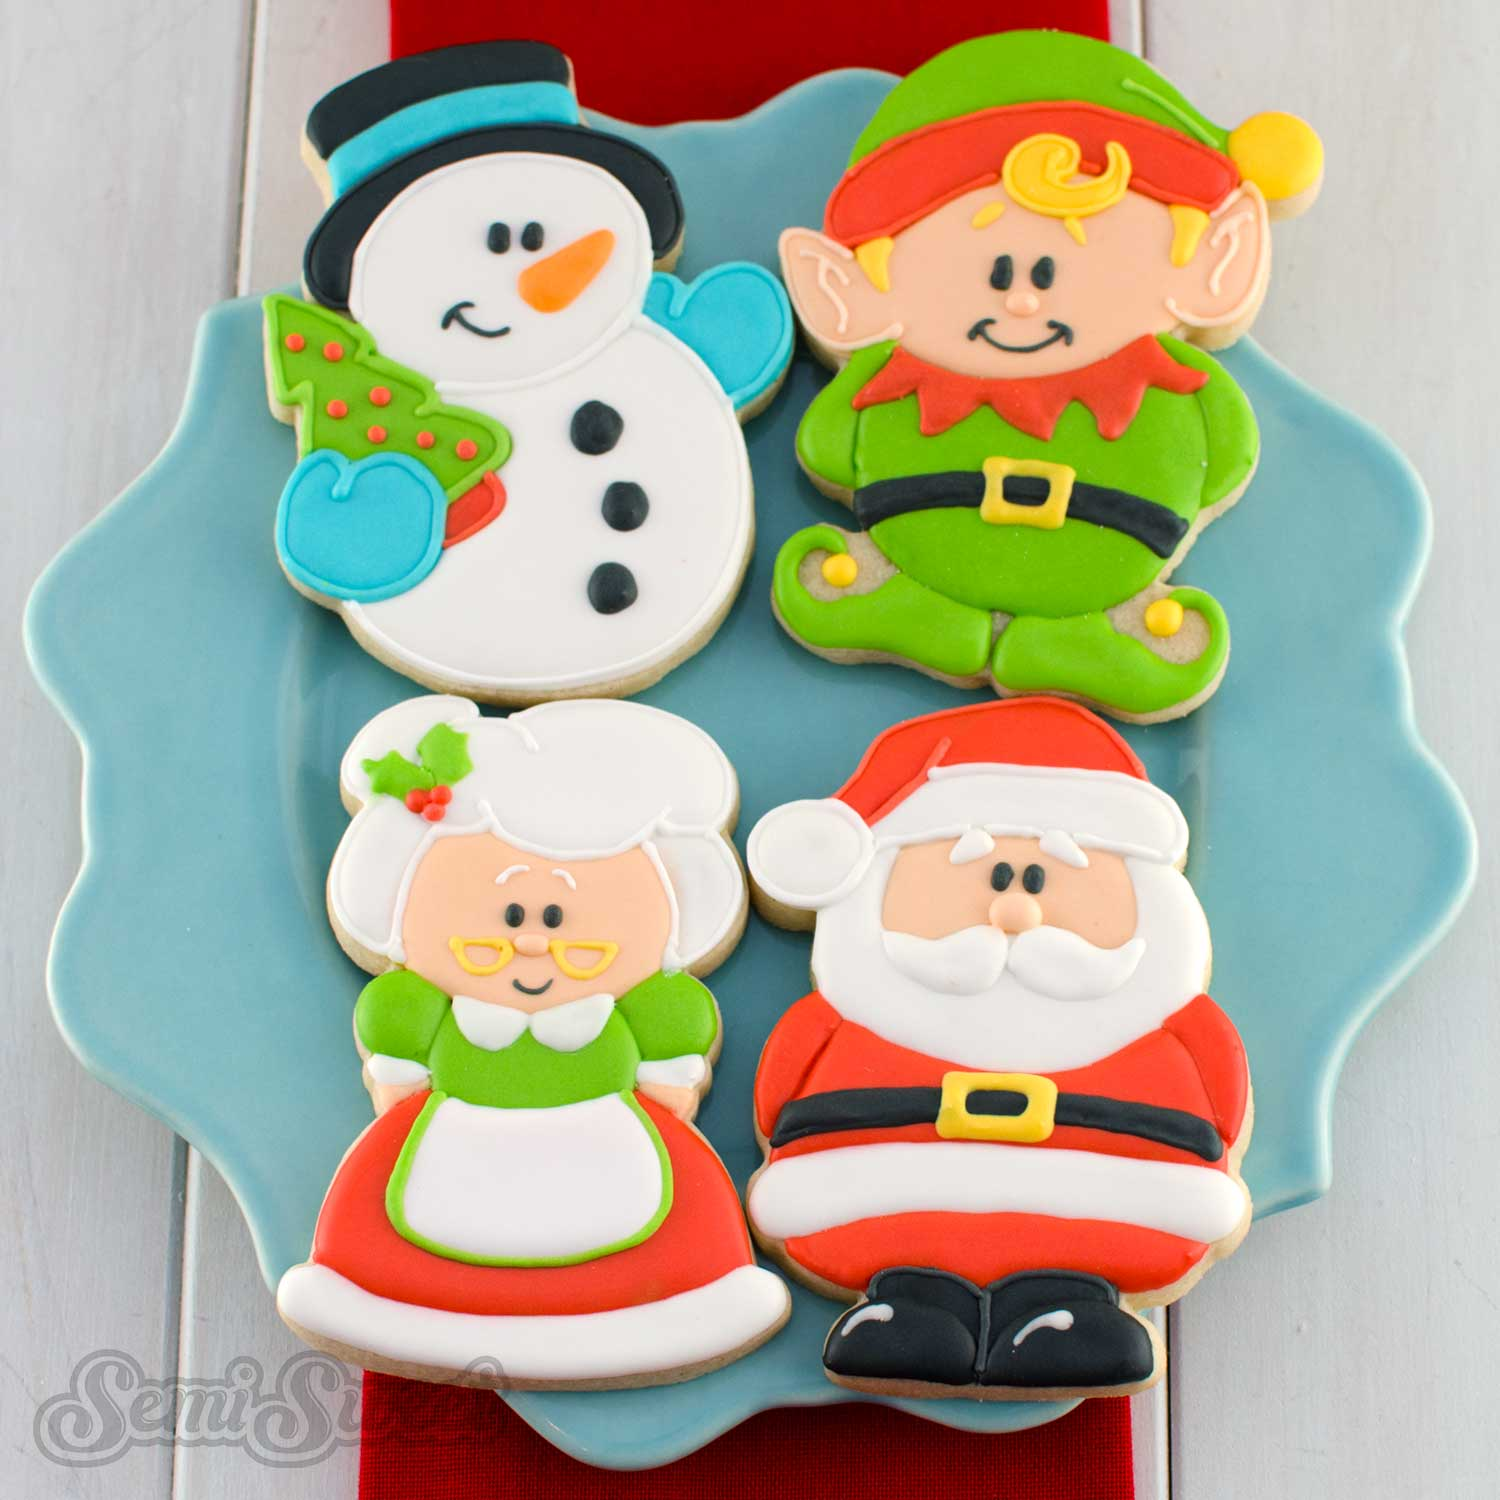 Christmas character cookies by Semi Sweet Designs